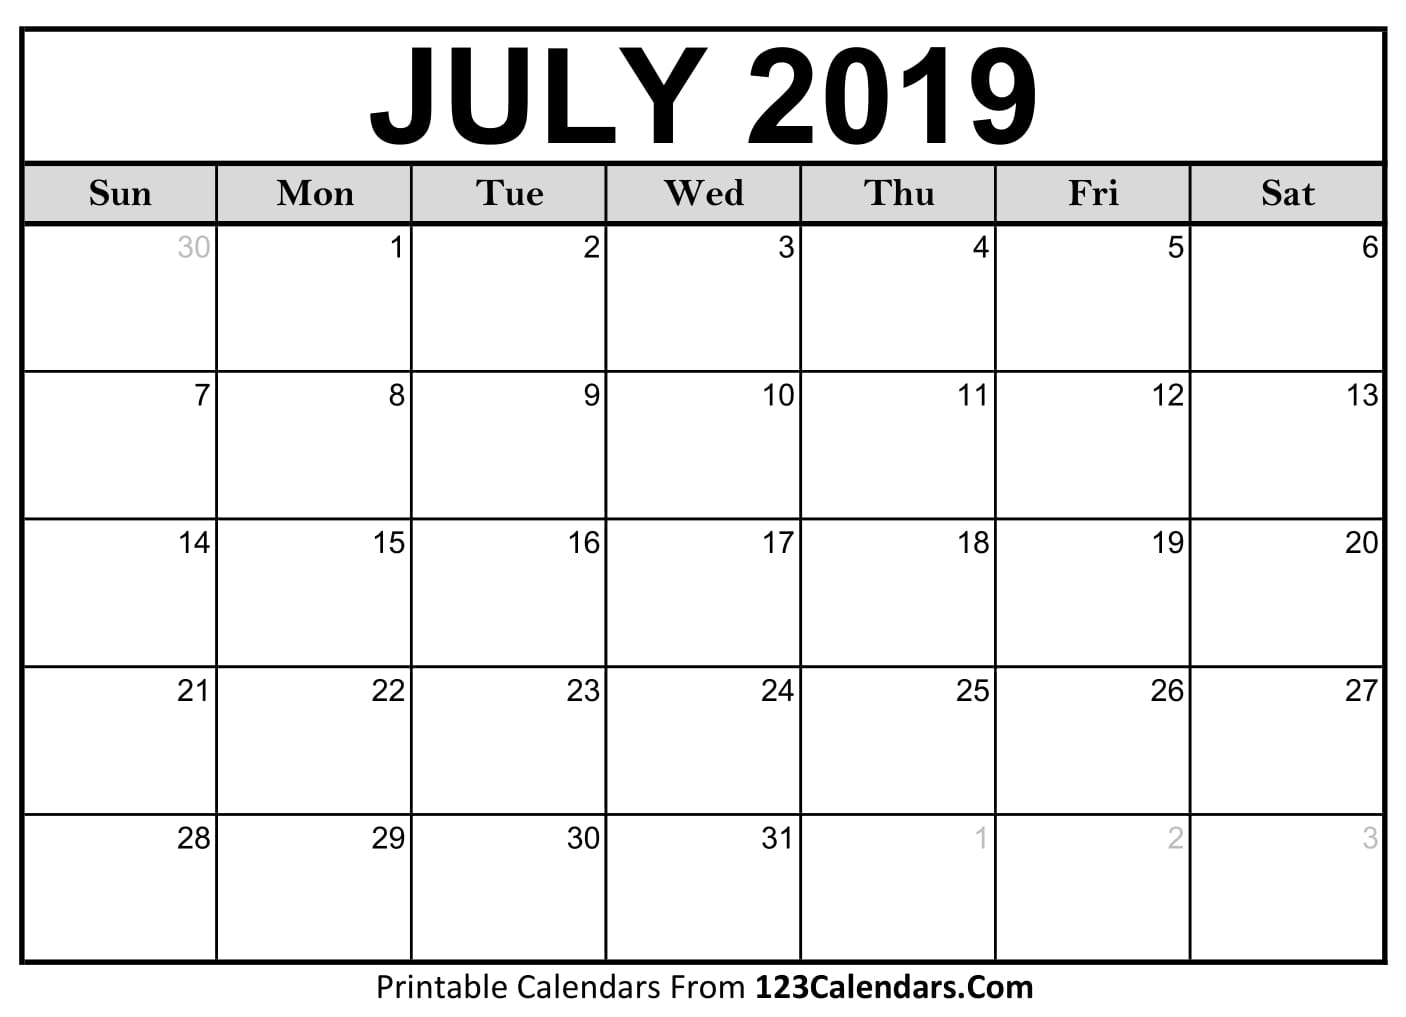 July 2019 Calendar Blank Easily Printable 123calendars